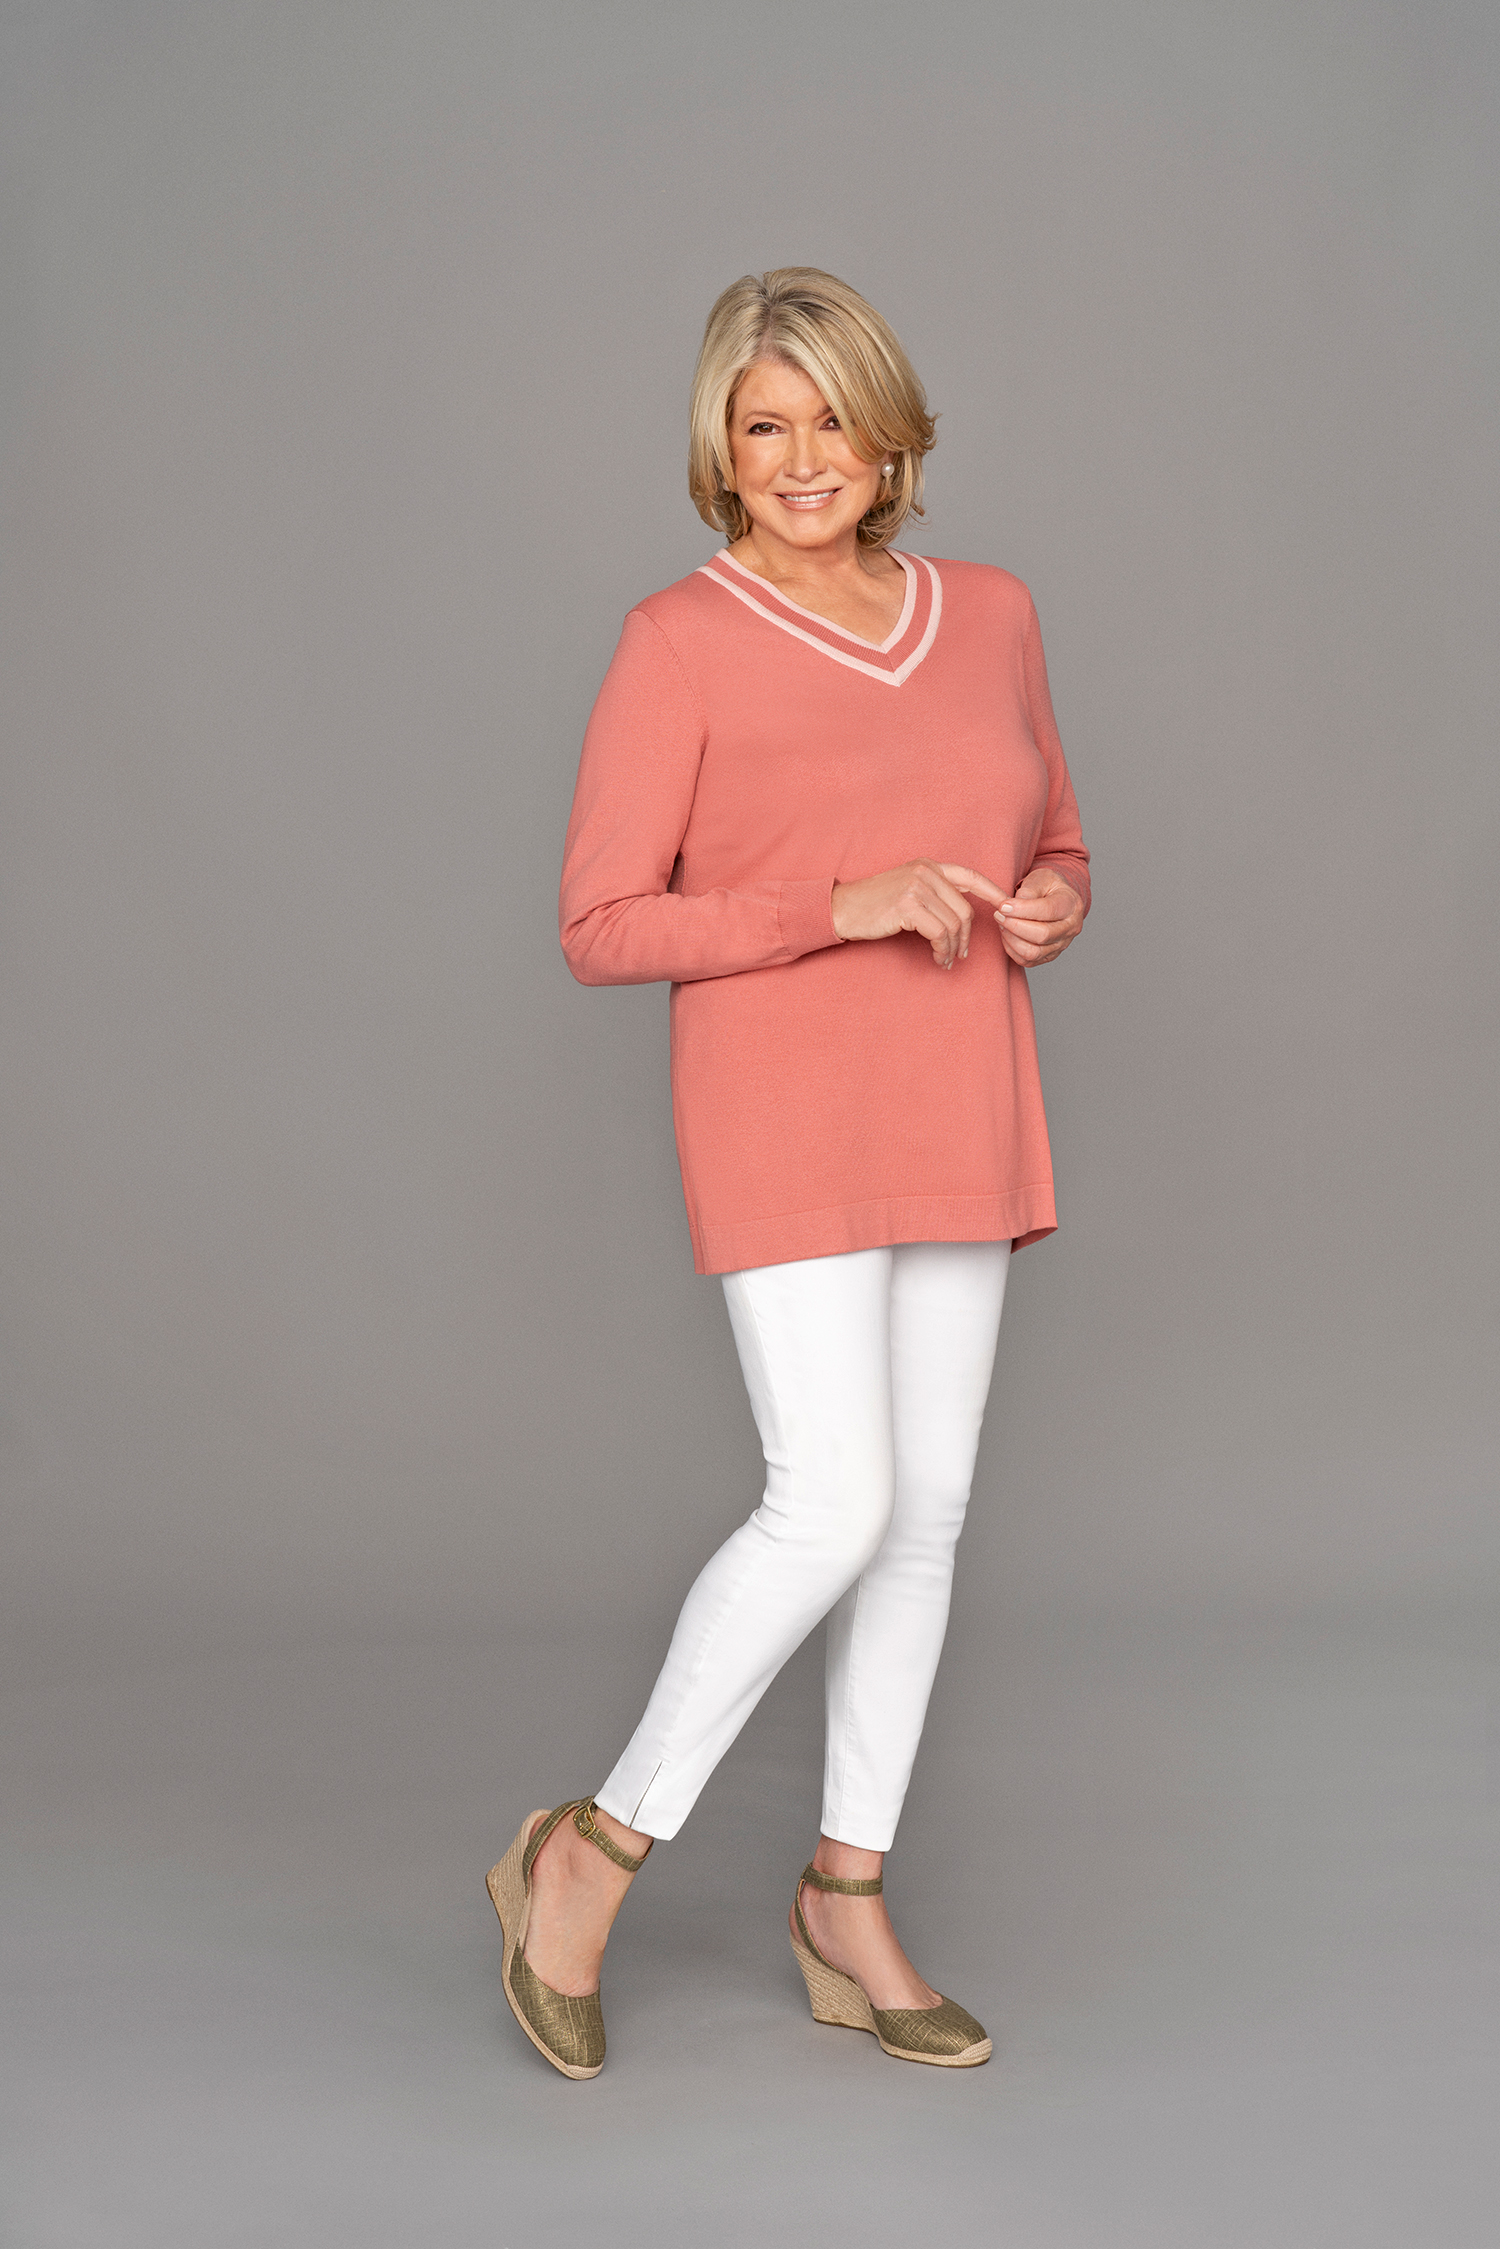 Martha in qvc apparel footwear